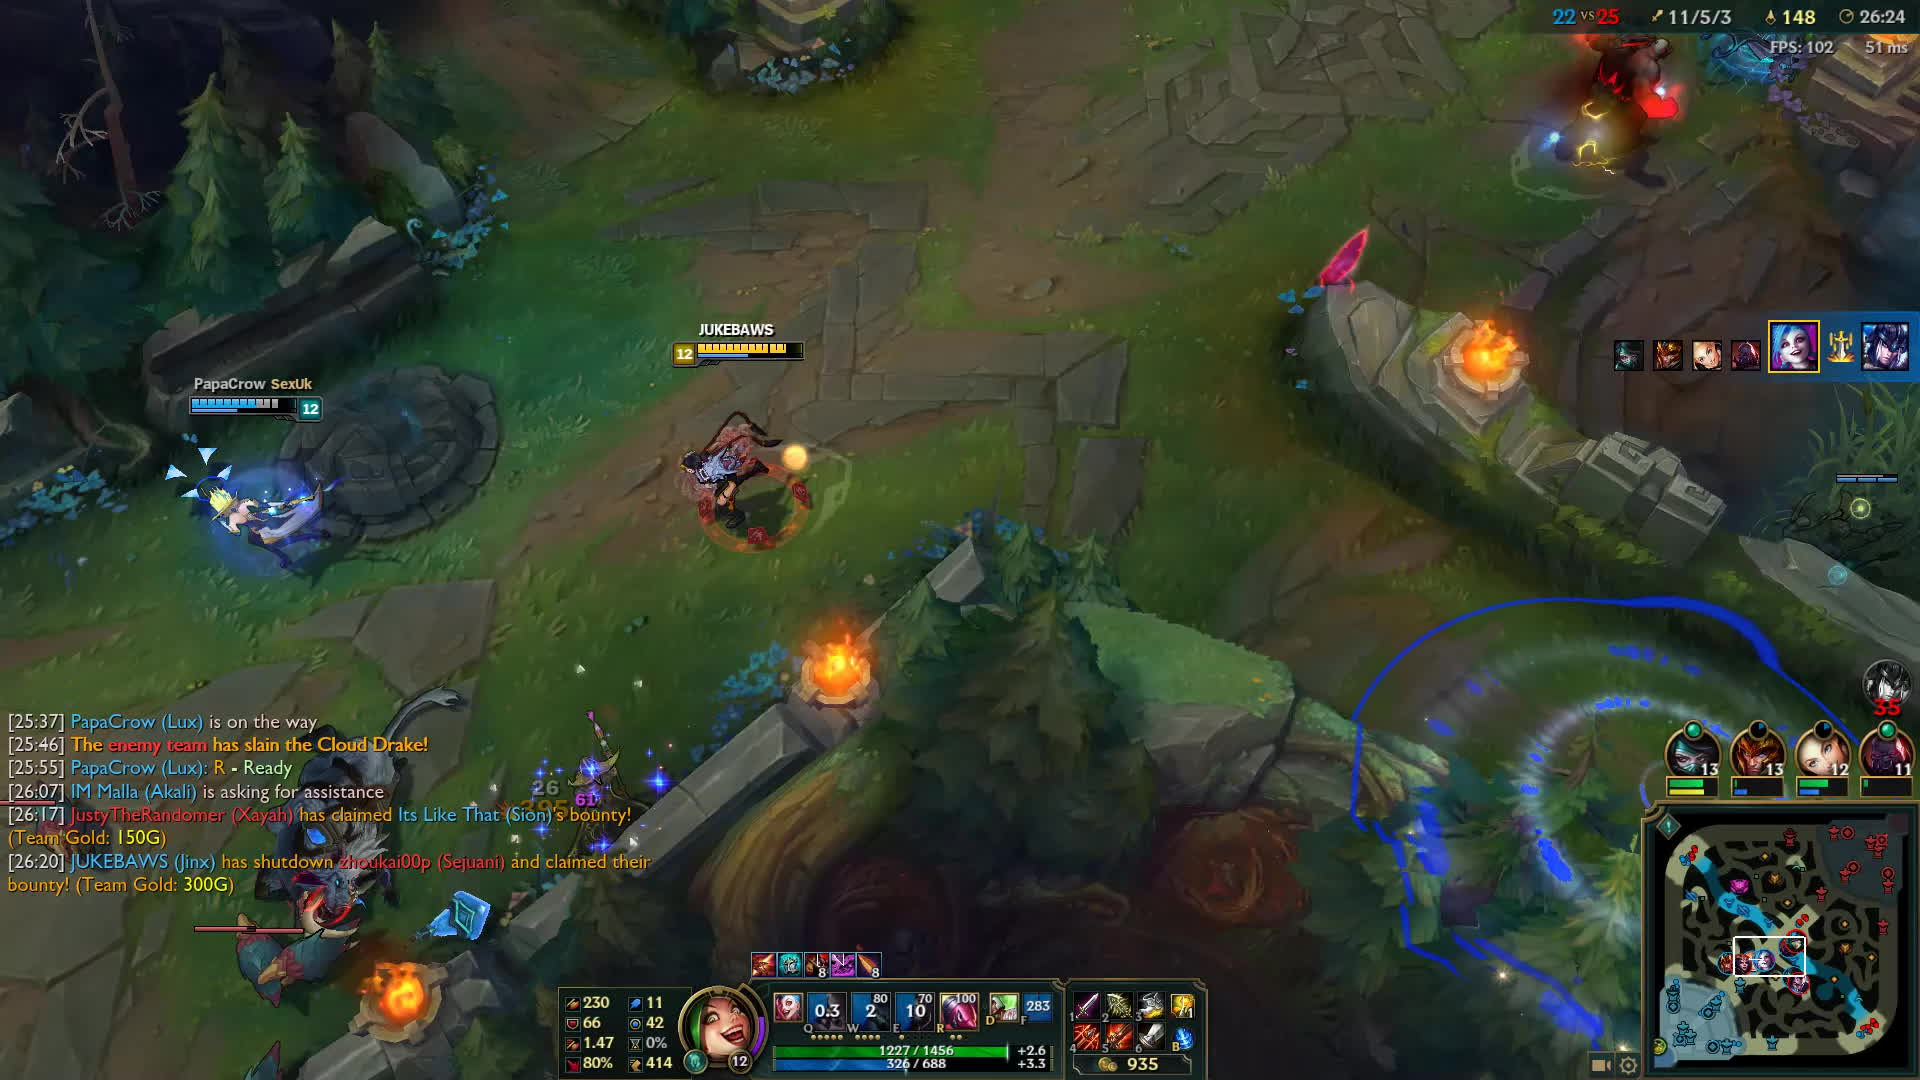 attack, bug, ghost shot, jinx, lol, spaghetti code, mildlyinfuriating GIFs